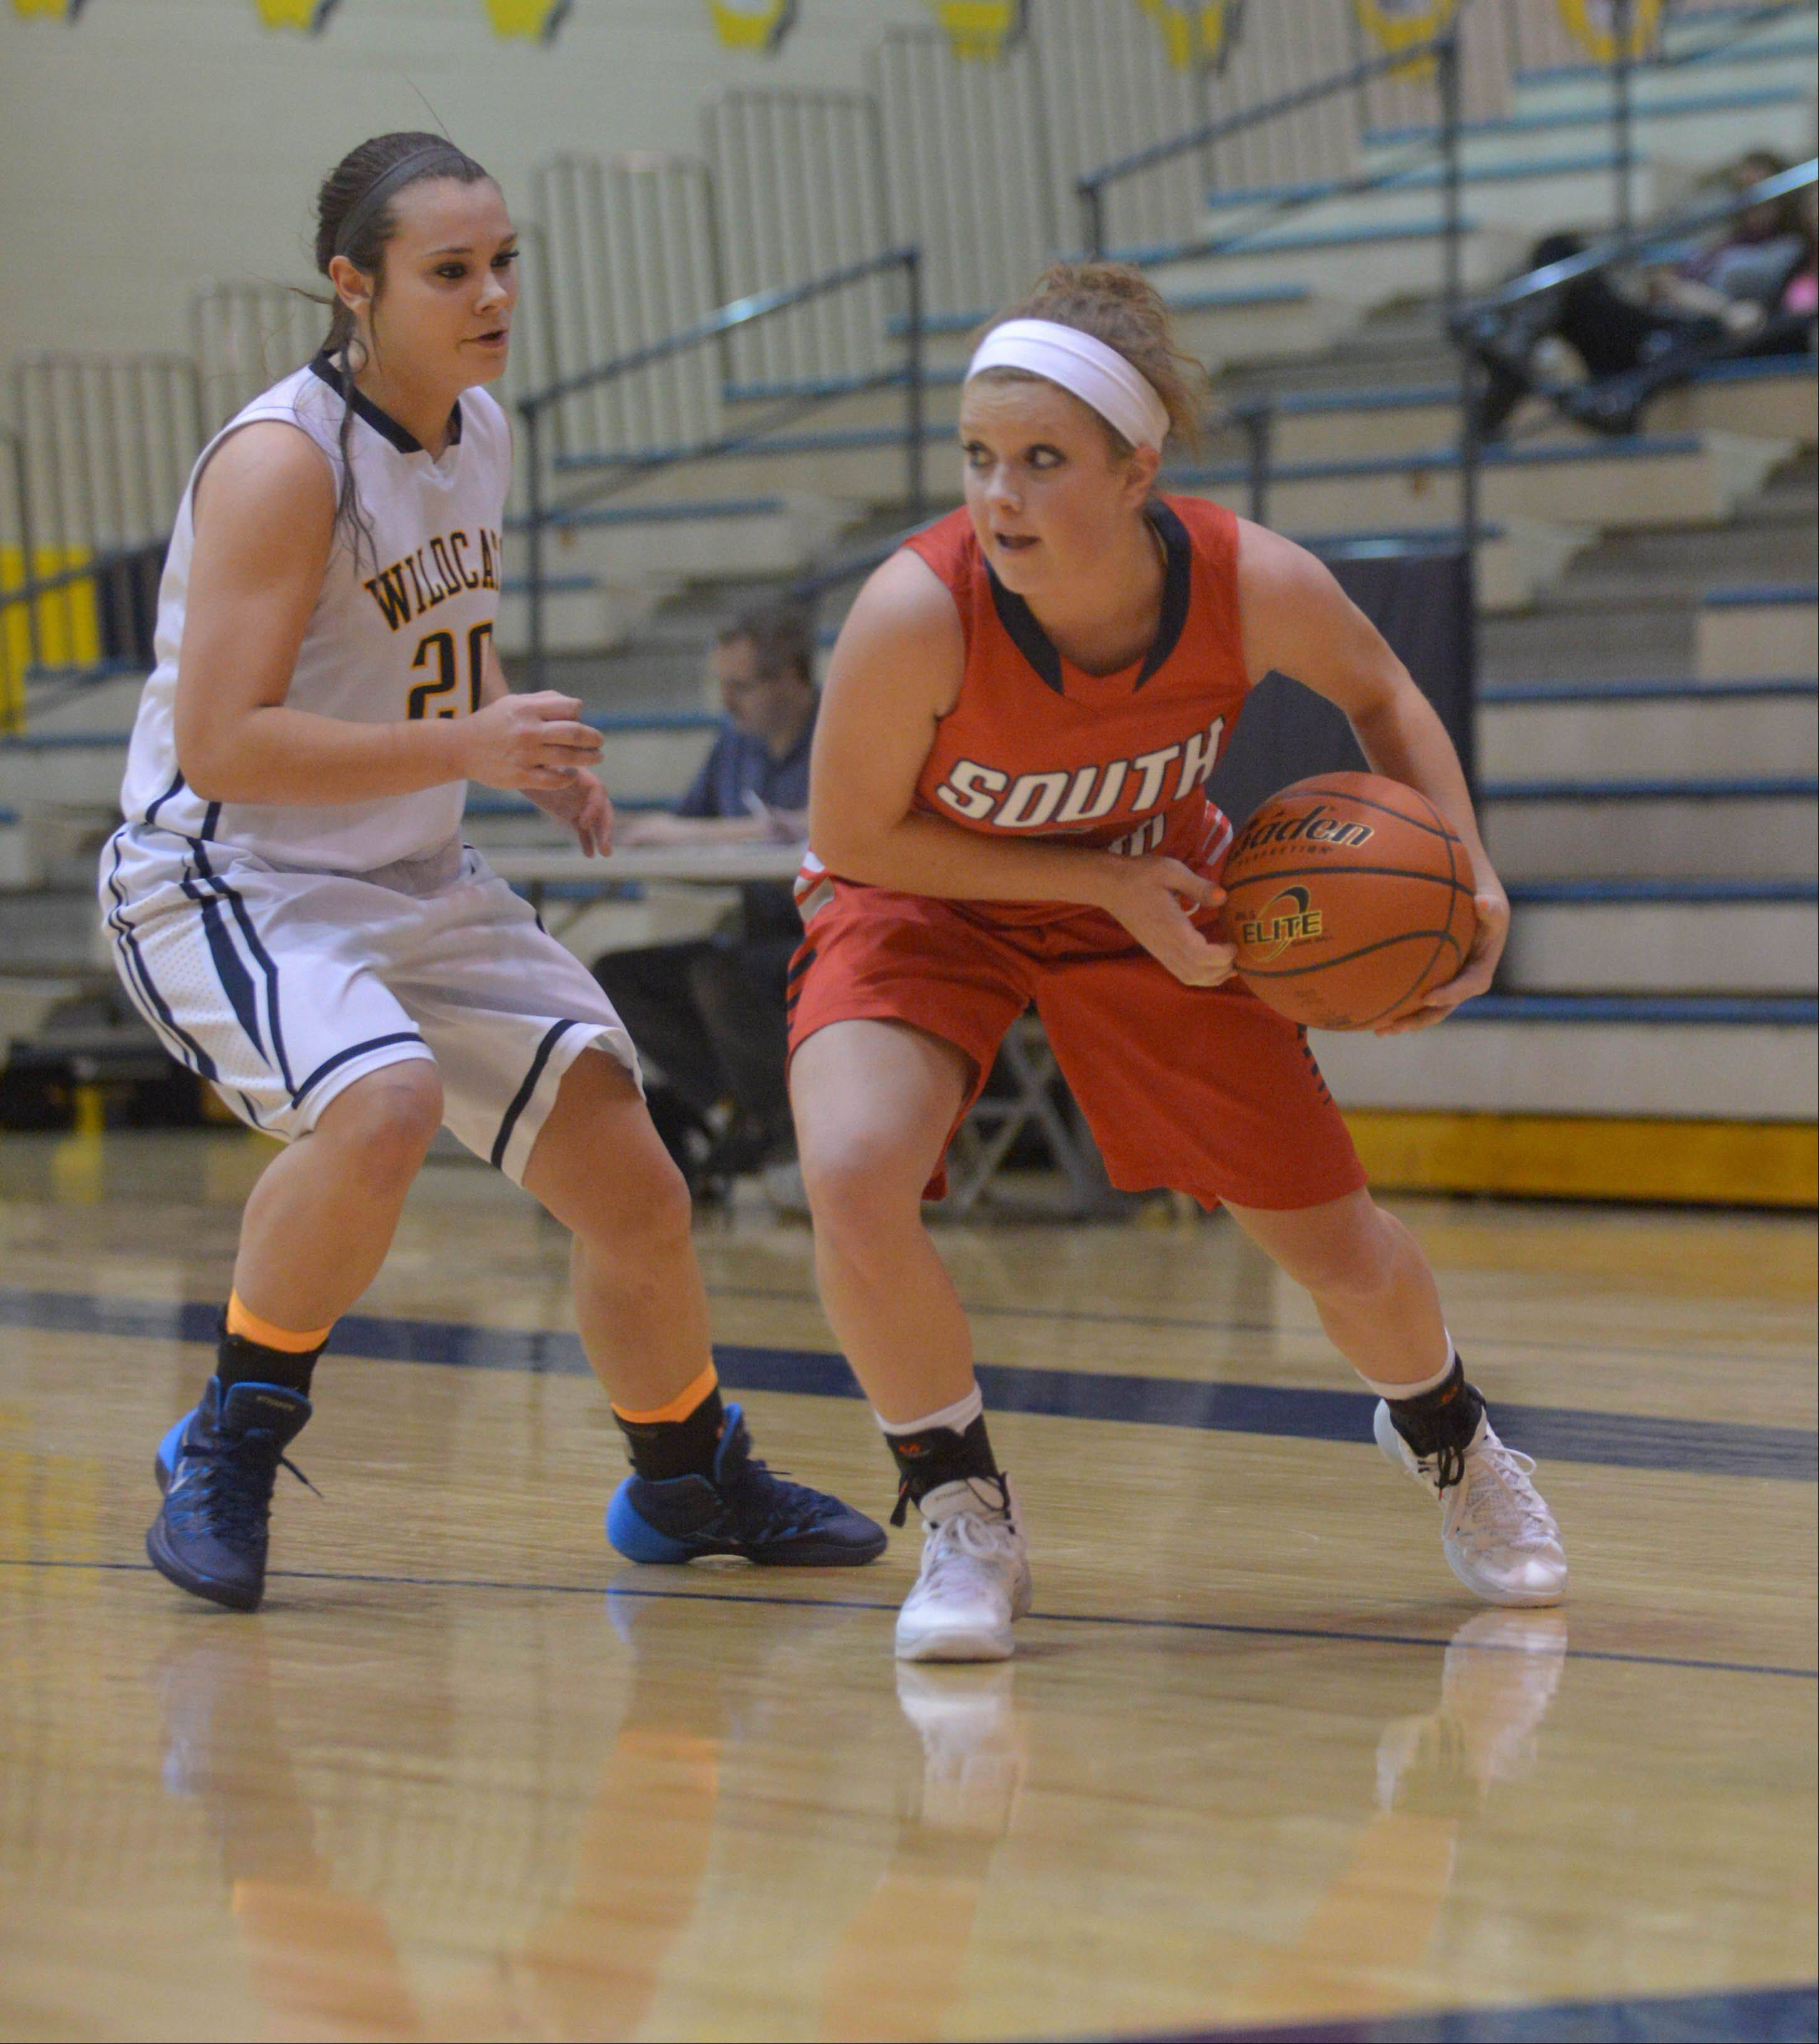 Niki Lazar of Neuqua and Anna Tracy of South Elgin move the ball during the South Elgin at Neuqua Valley girls basketball game Wednesday.